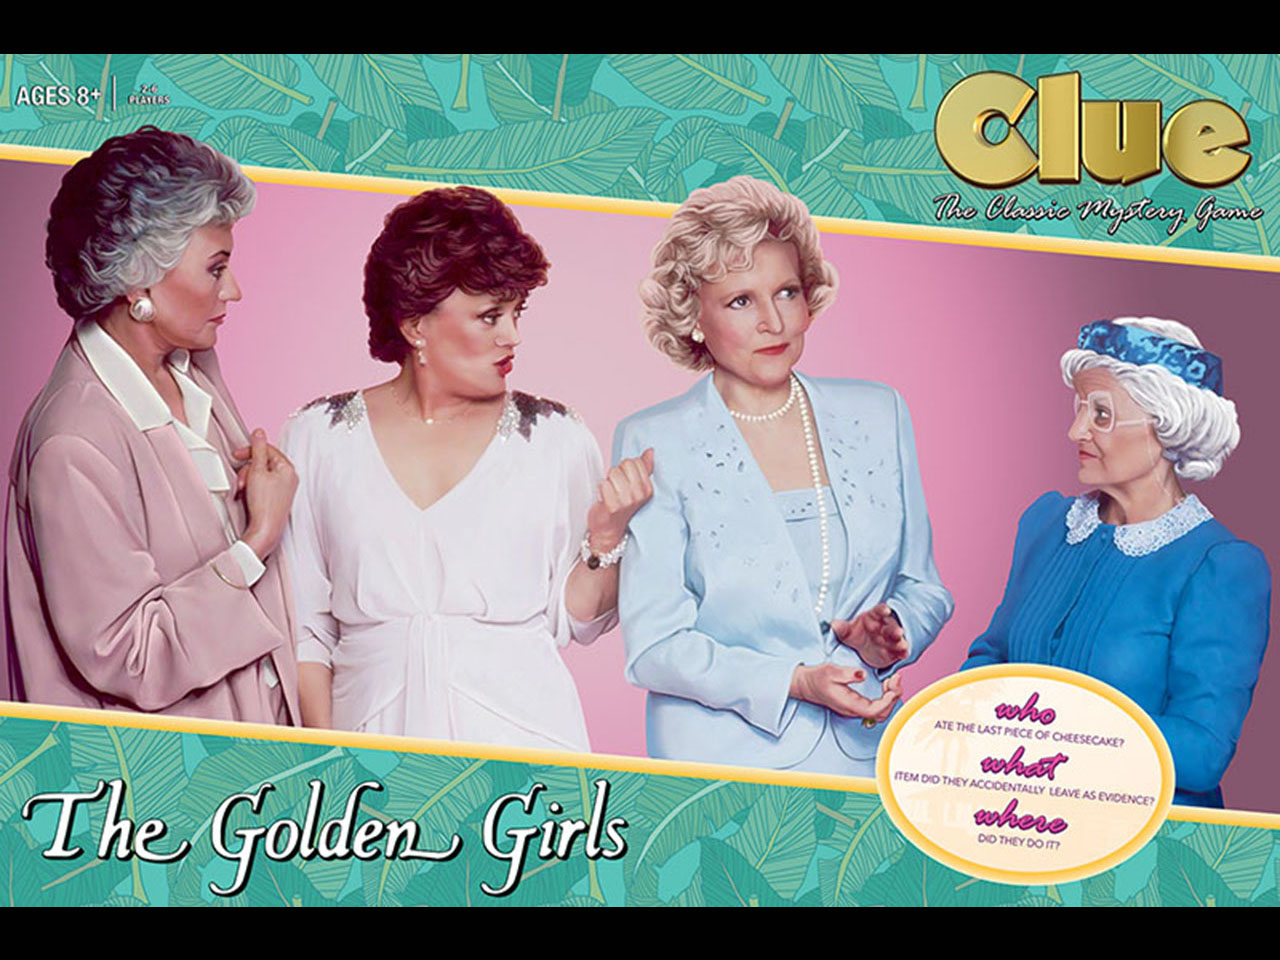 Golden Girls Clue solves the mystery of who ate the cheesecake.